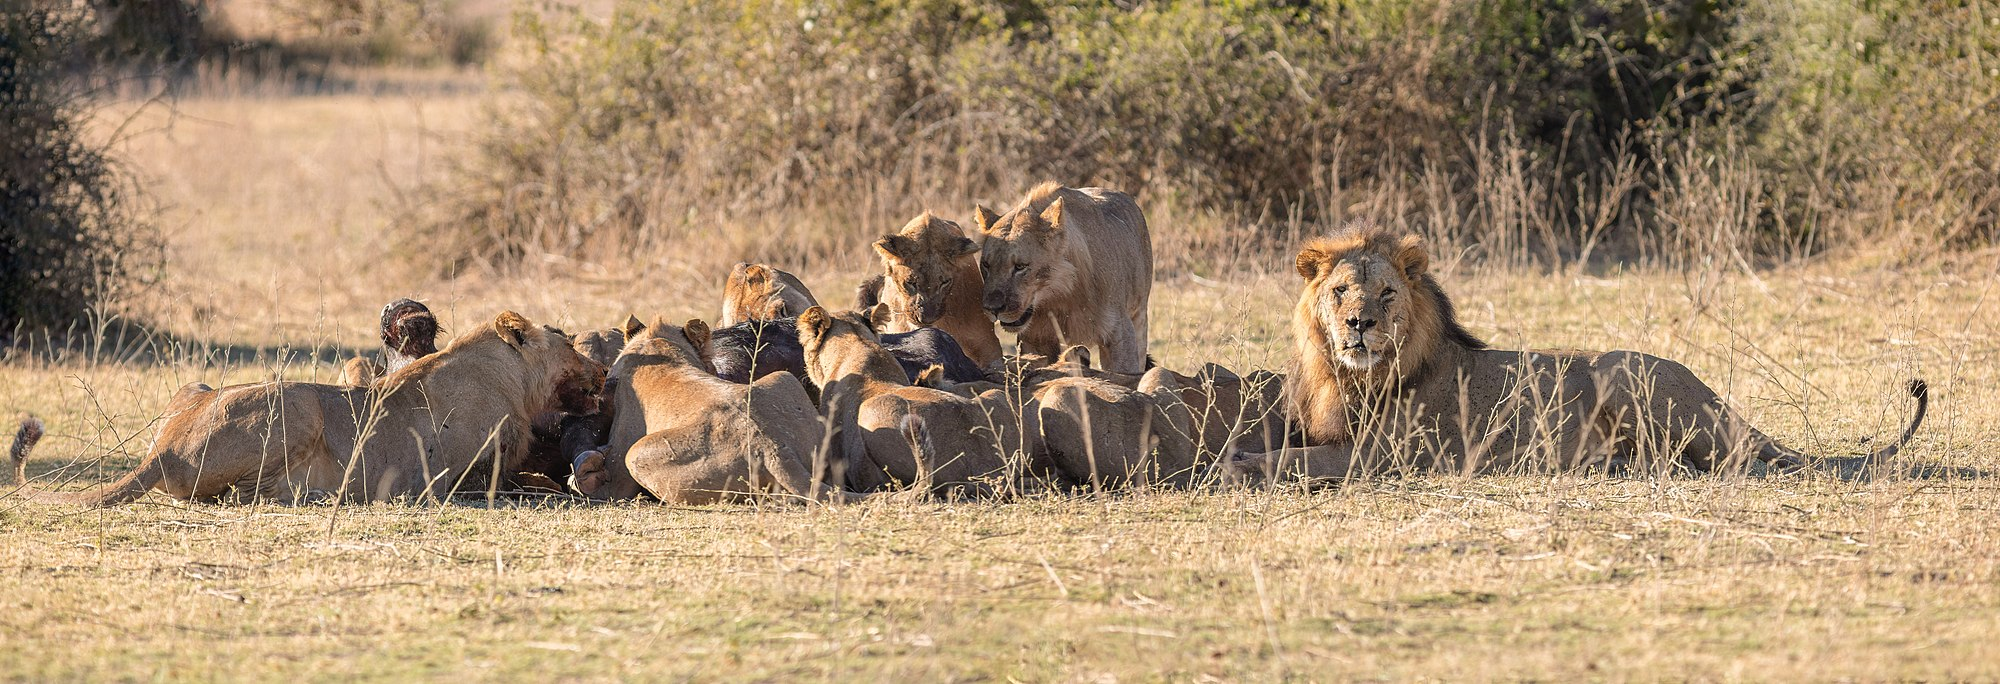 Lions (Panthera leo) devouring an African buffalo (Syncerus caffer caffer), Chobe National Park, Botswana